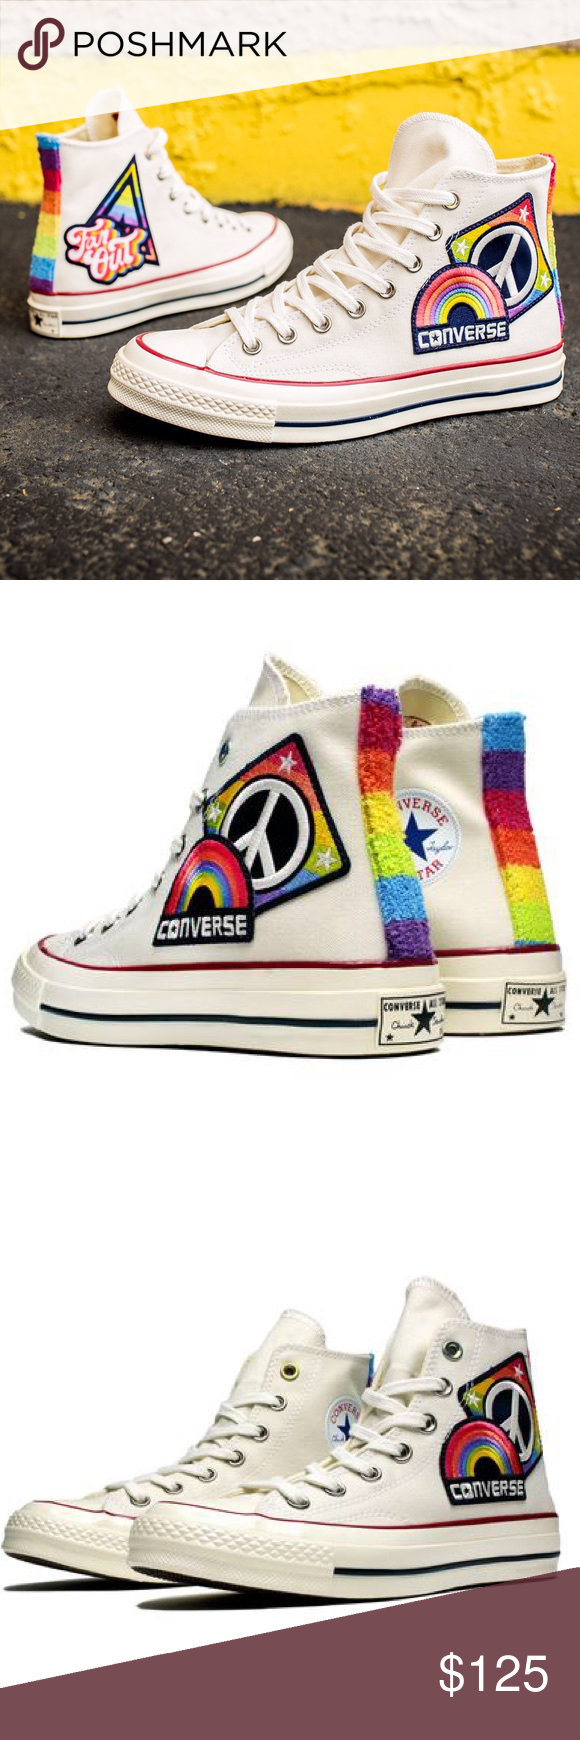 """14cfceb0ea2103 Converse Chuck Taylor All-Star  70 Hi """"Pride"""" shoe Proceeds from the Converse  Pride collection go to the It Gets Better Project and the Happy Hippie ..."""